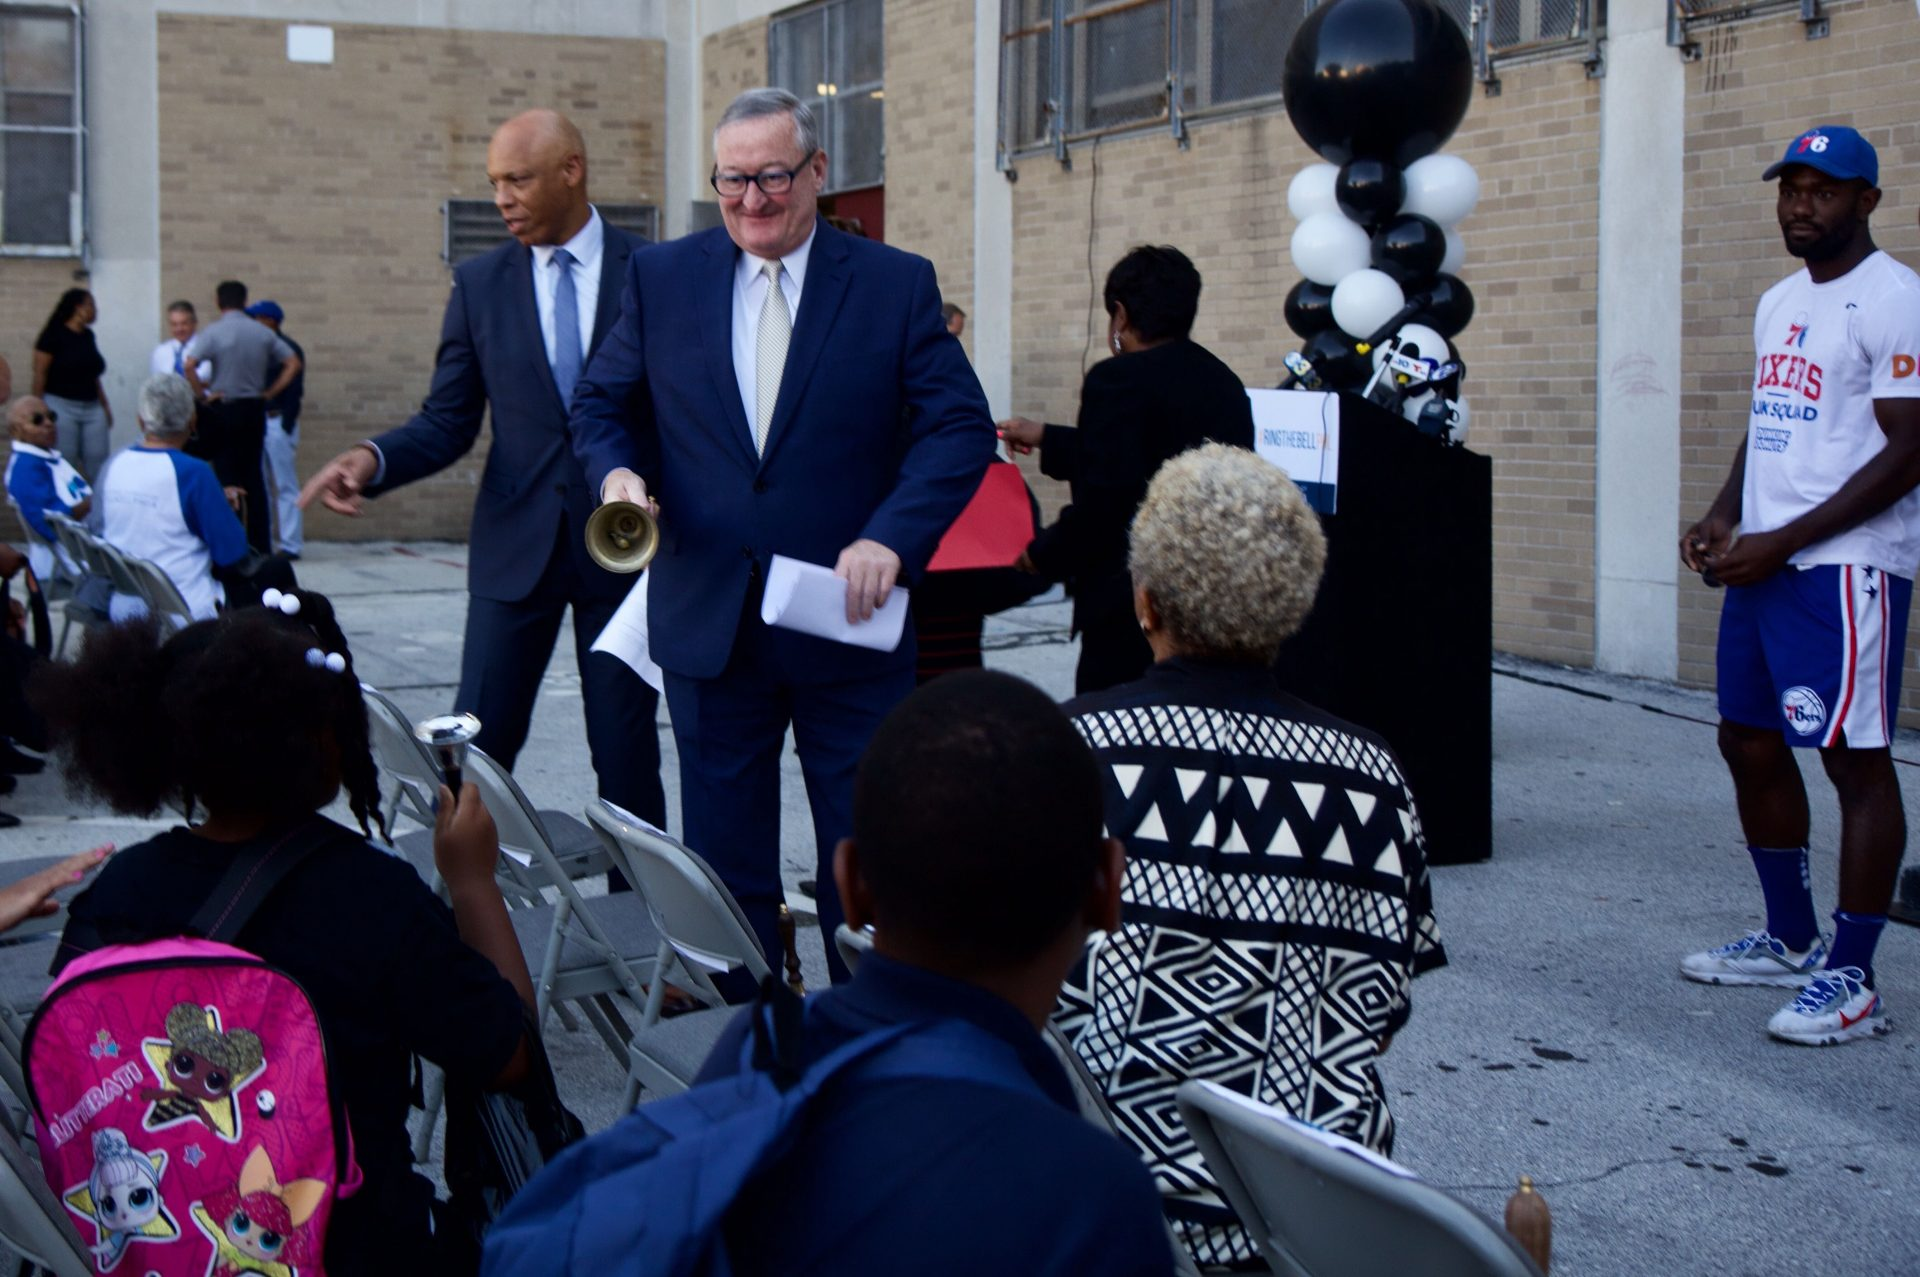 Philadelphia superintendent William Hite and Mayor Jim Kenney ring bells with students at Robert Morris Elementary School.